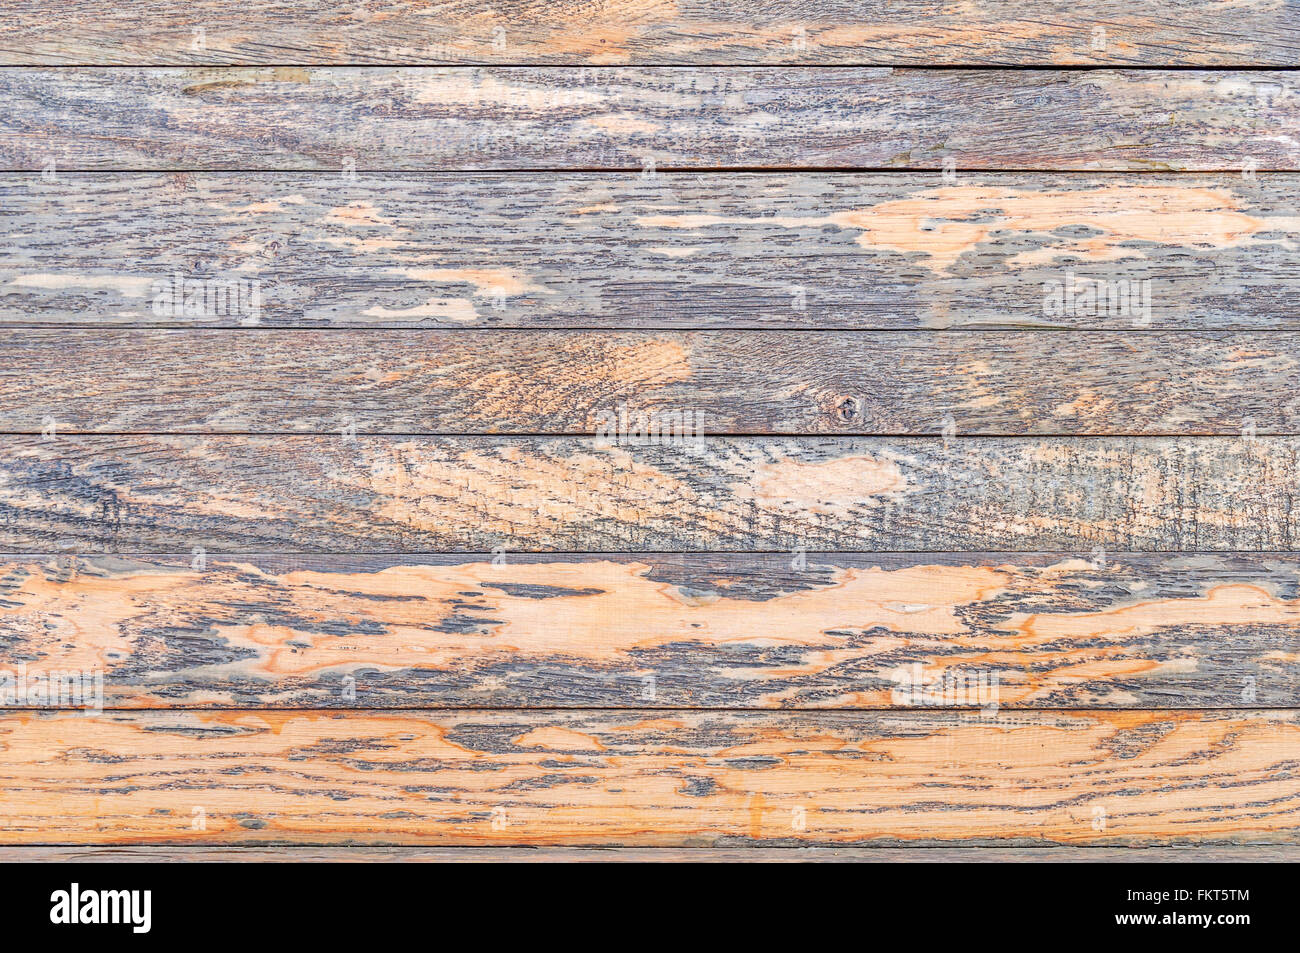 Rustic weathered barn wood - Stock Image